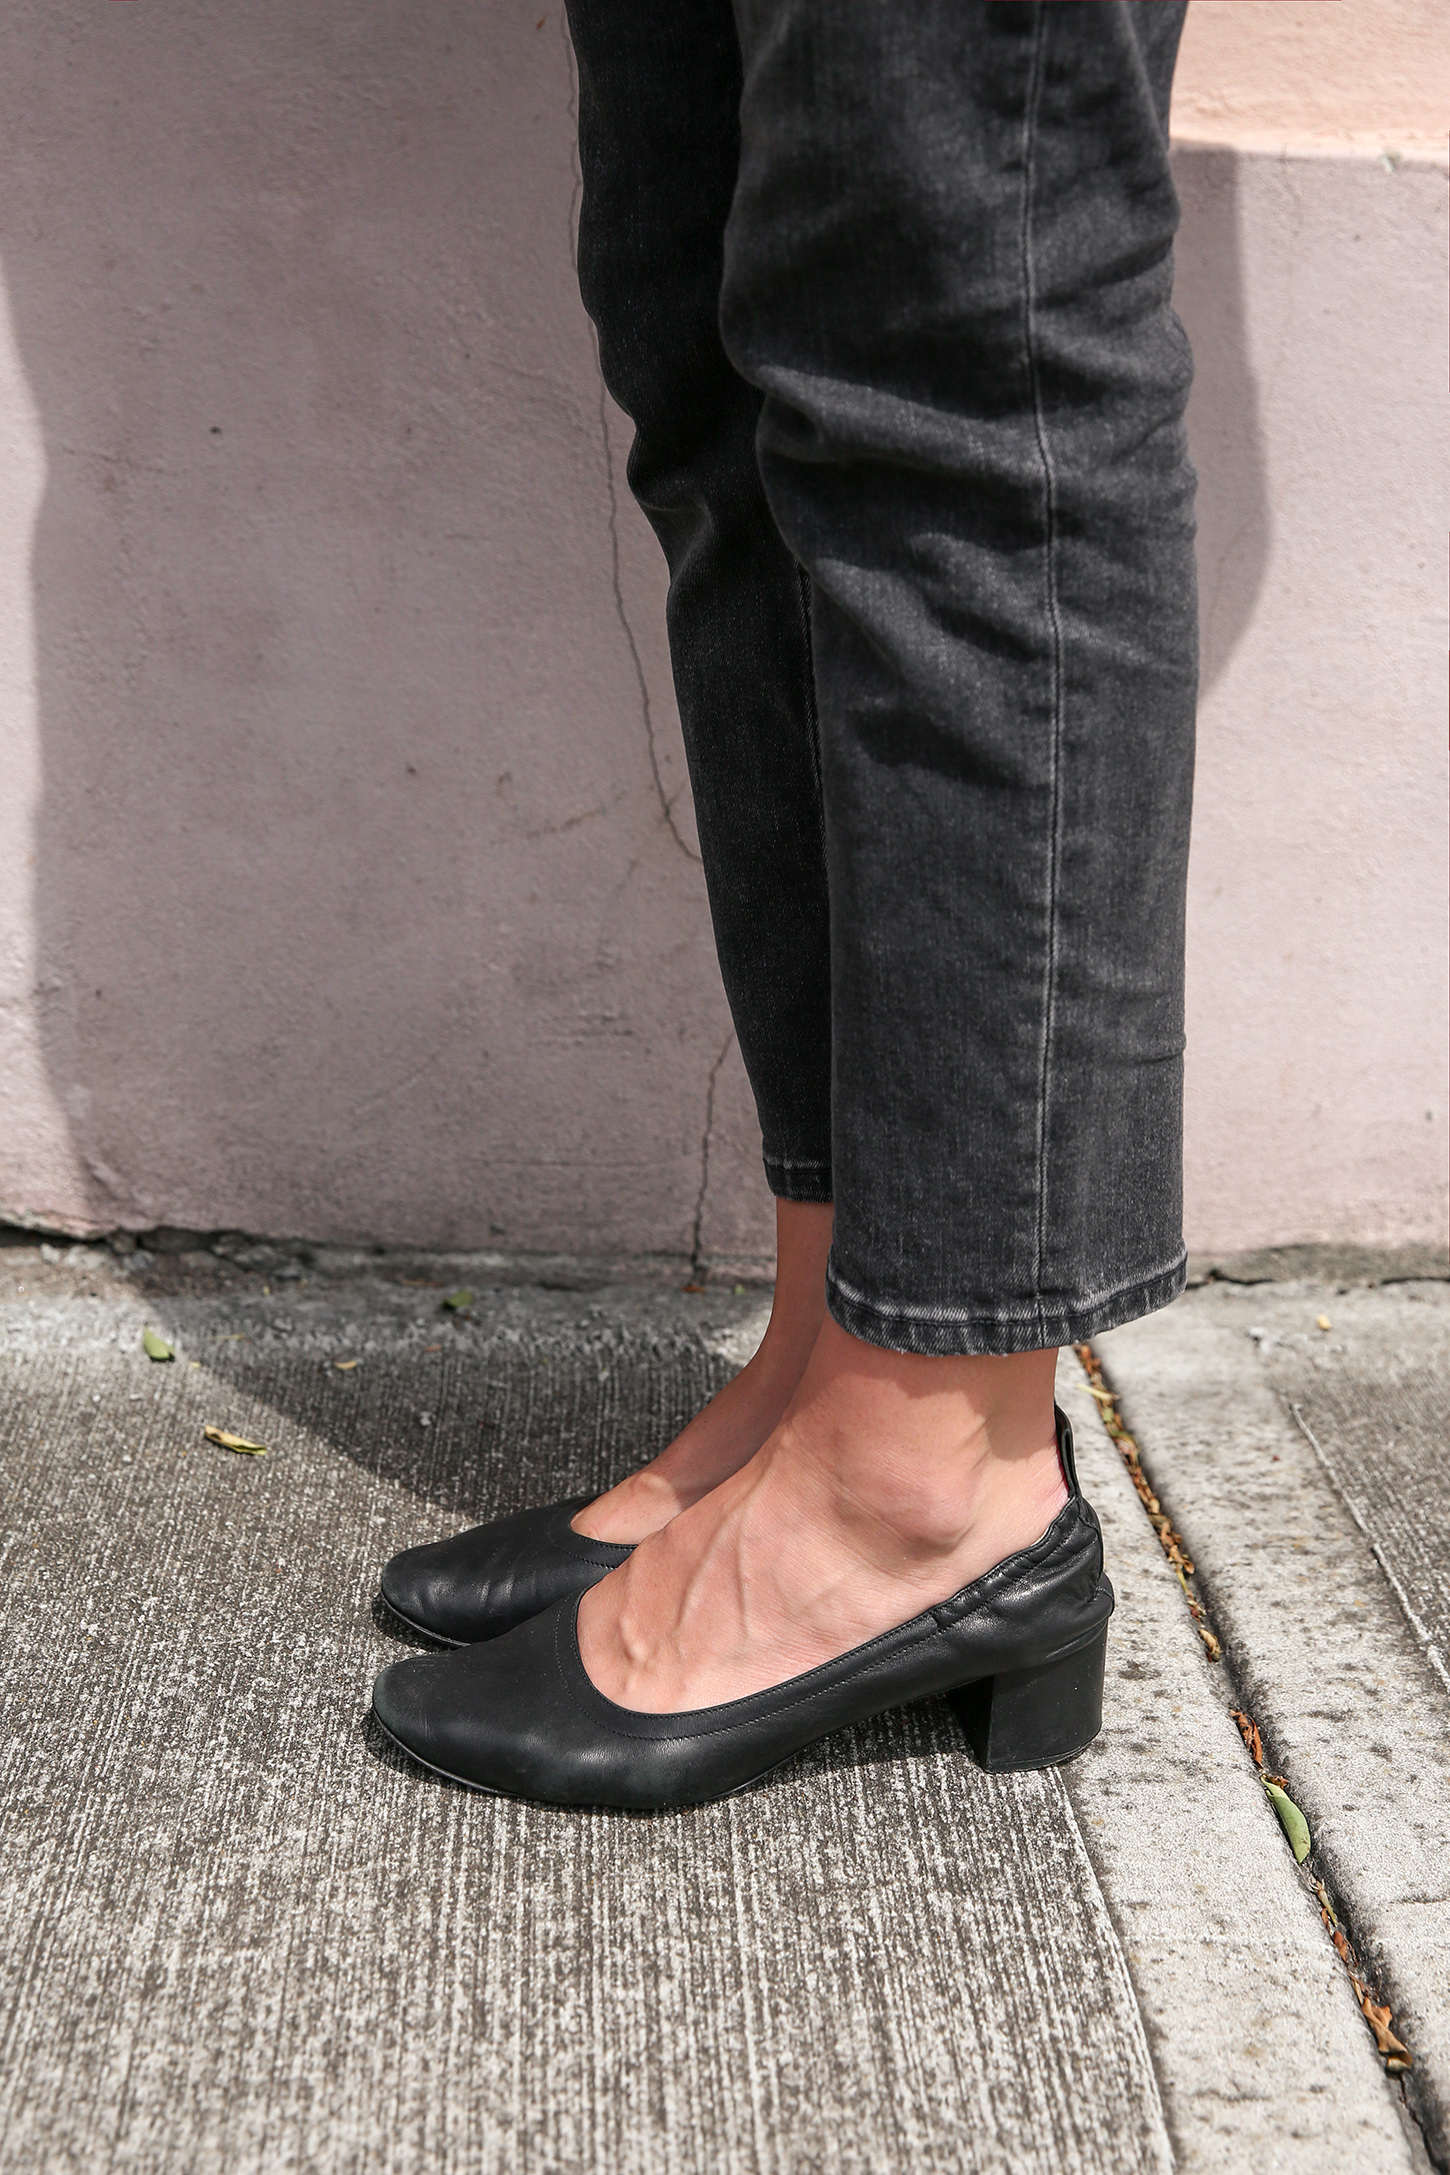 Updated Everlane Day Heel Review: 12+